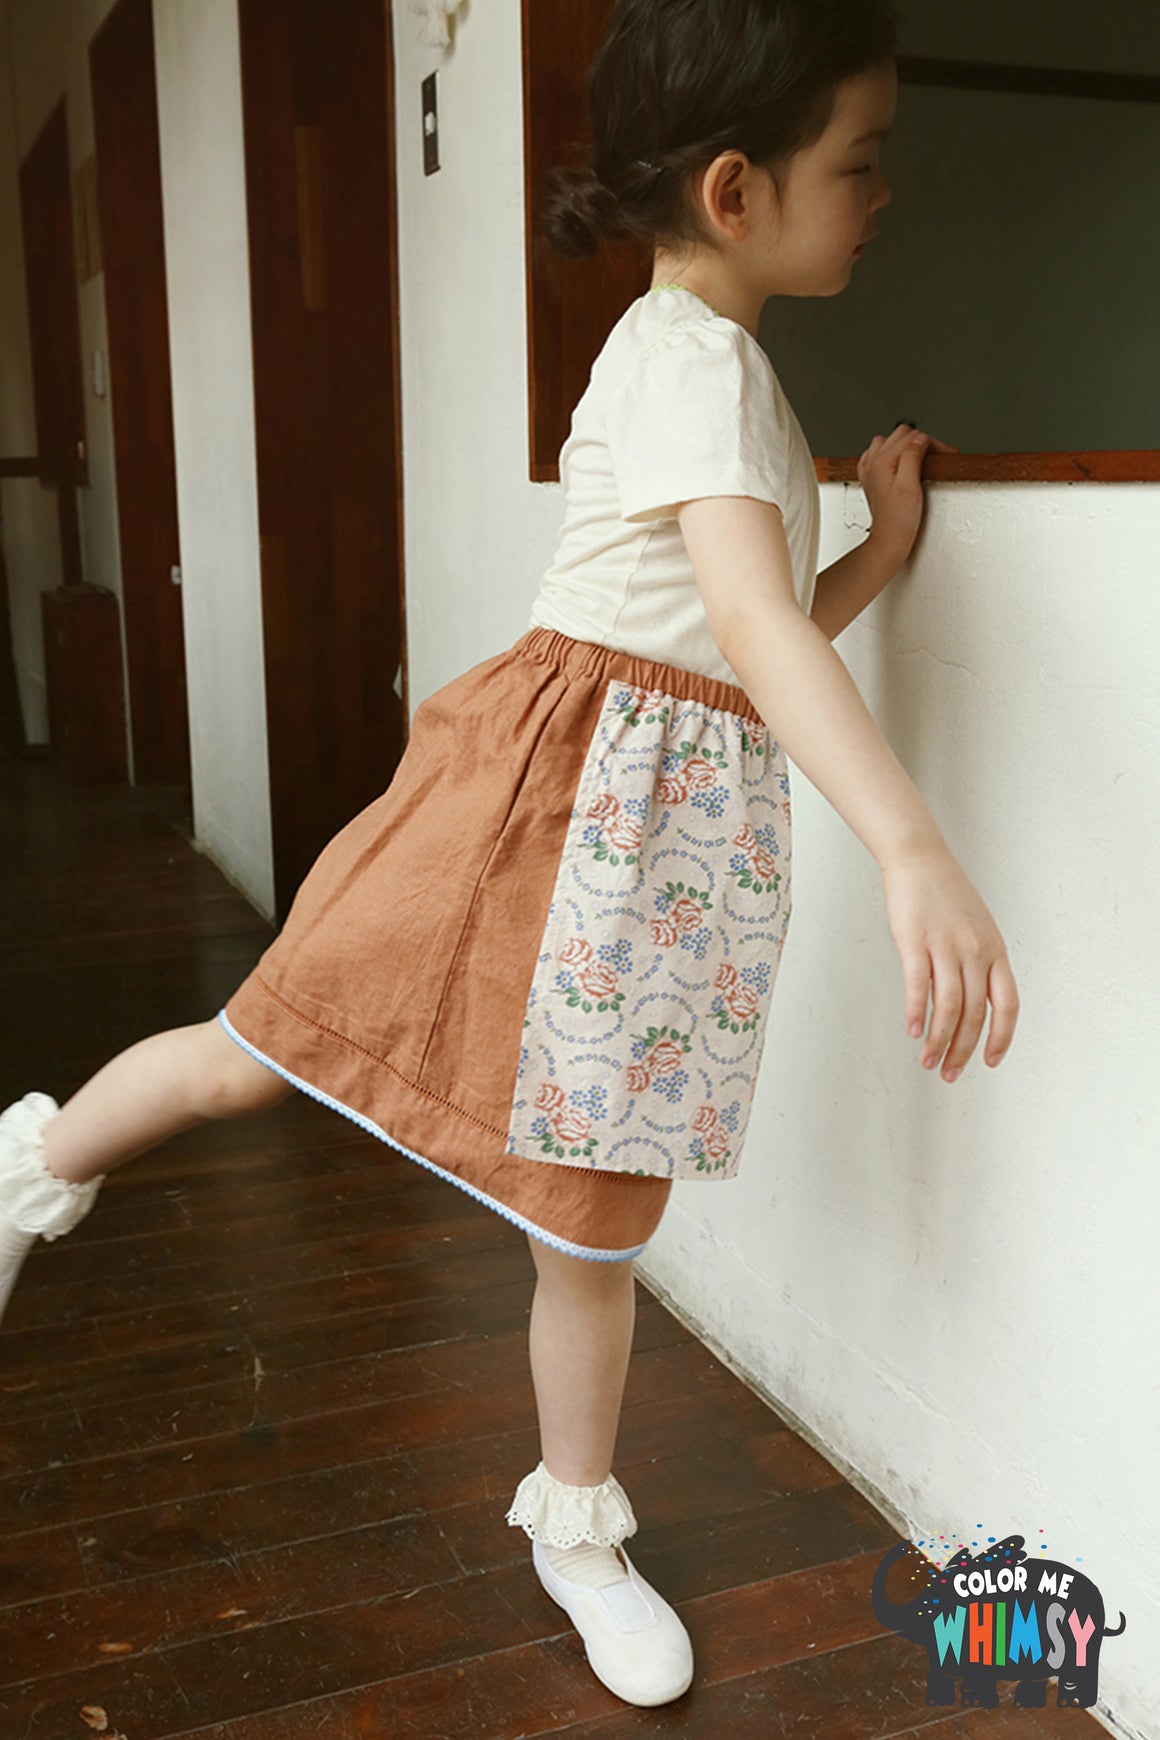 Amber Vintage Durin Skirt - Two Colors - Color Me WHIMSY